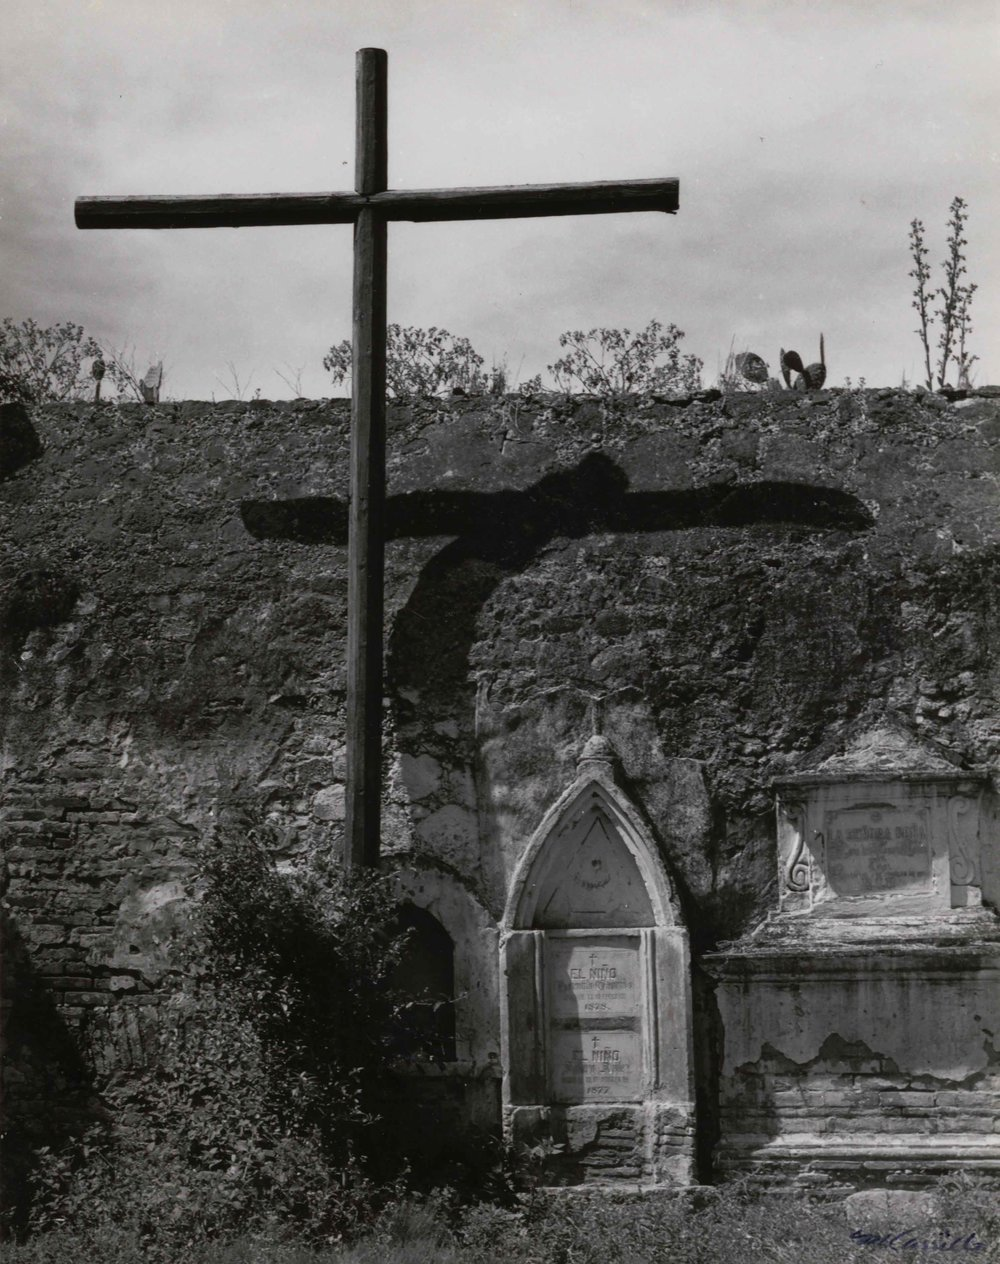 Cemetery with Crucifix  (Apan, Hidalgo), 1973. Black & White photograph on paper. 8 x 10